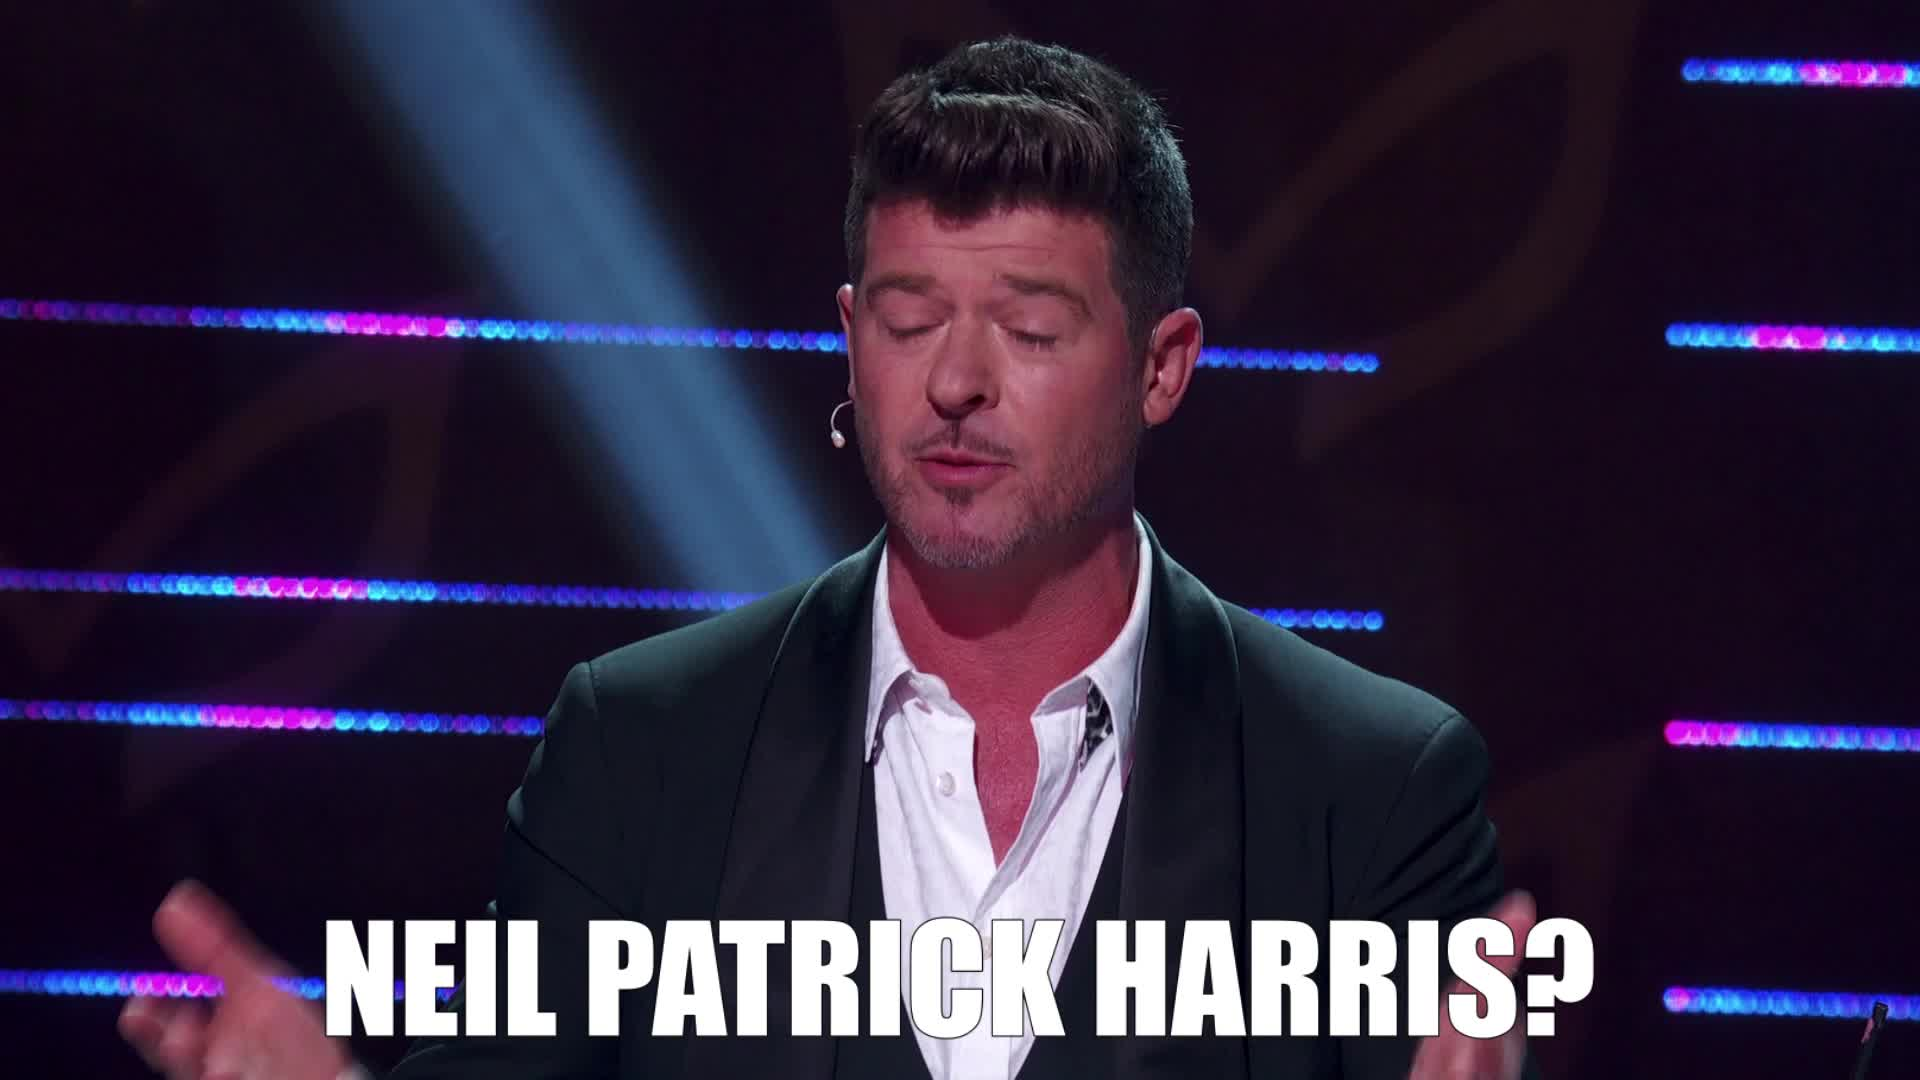 confused, masked singer, neil patrick harris, question, question mark, robin thicke, the masked singer, the masked singer on fox, Neil Patrick Harris? GIFs